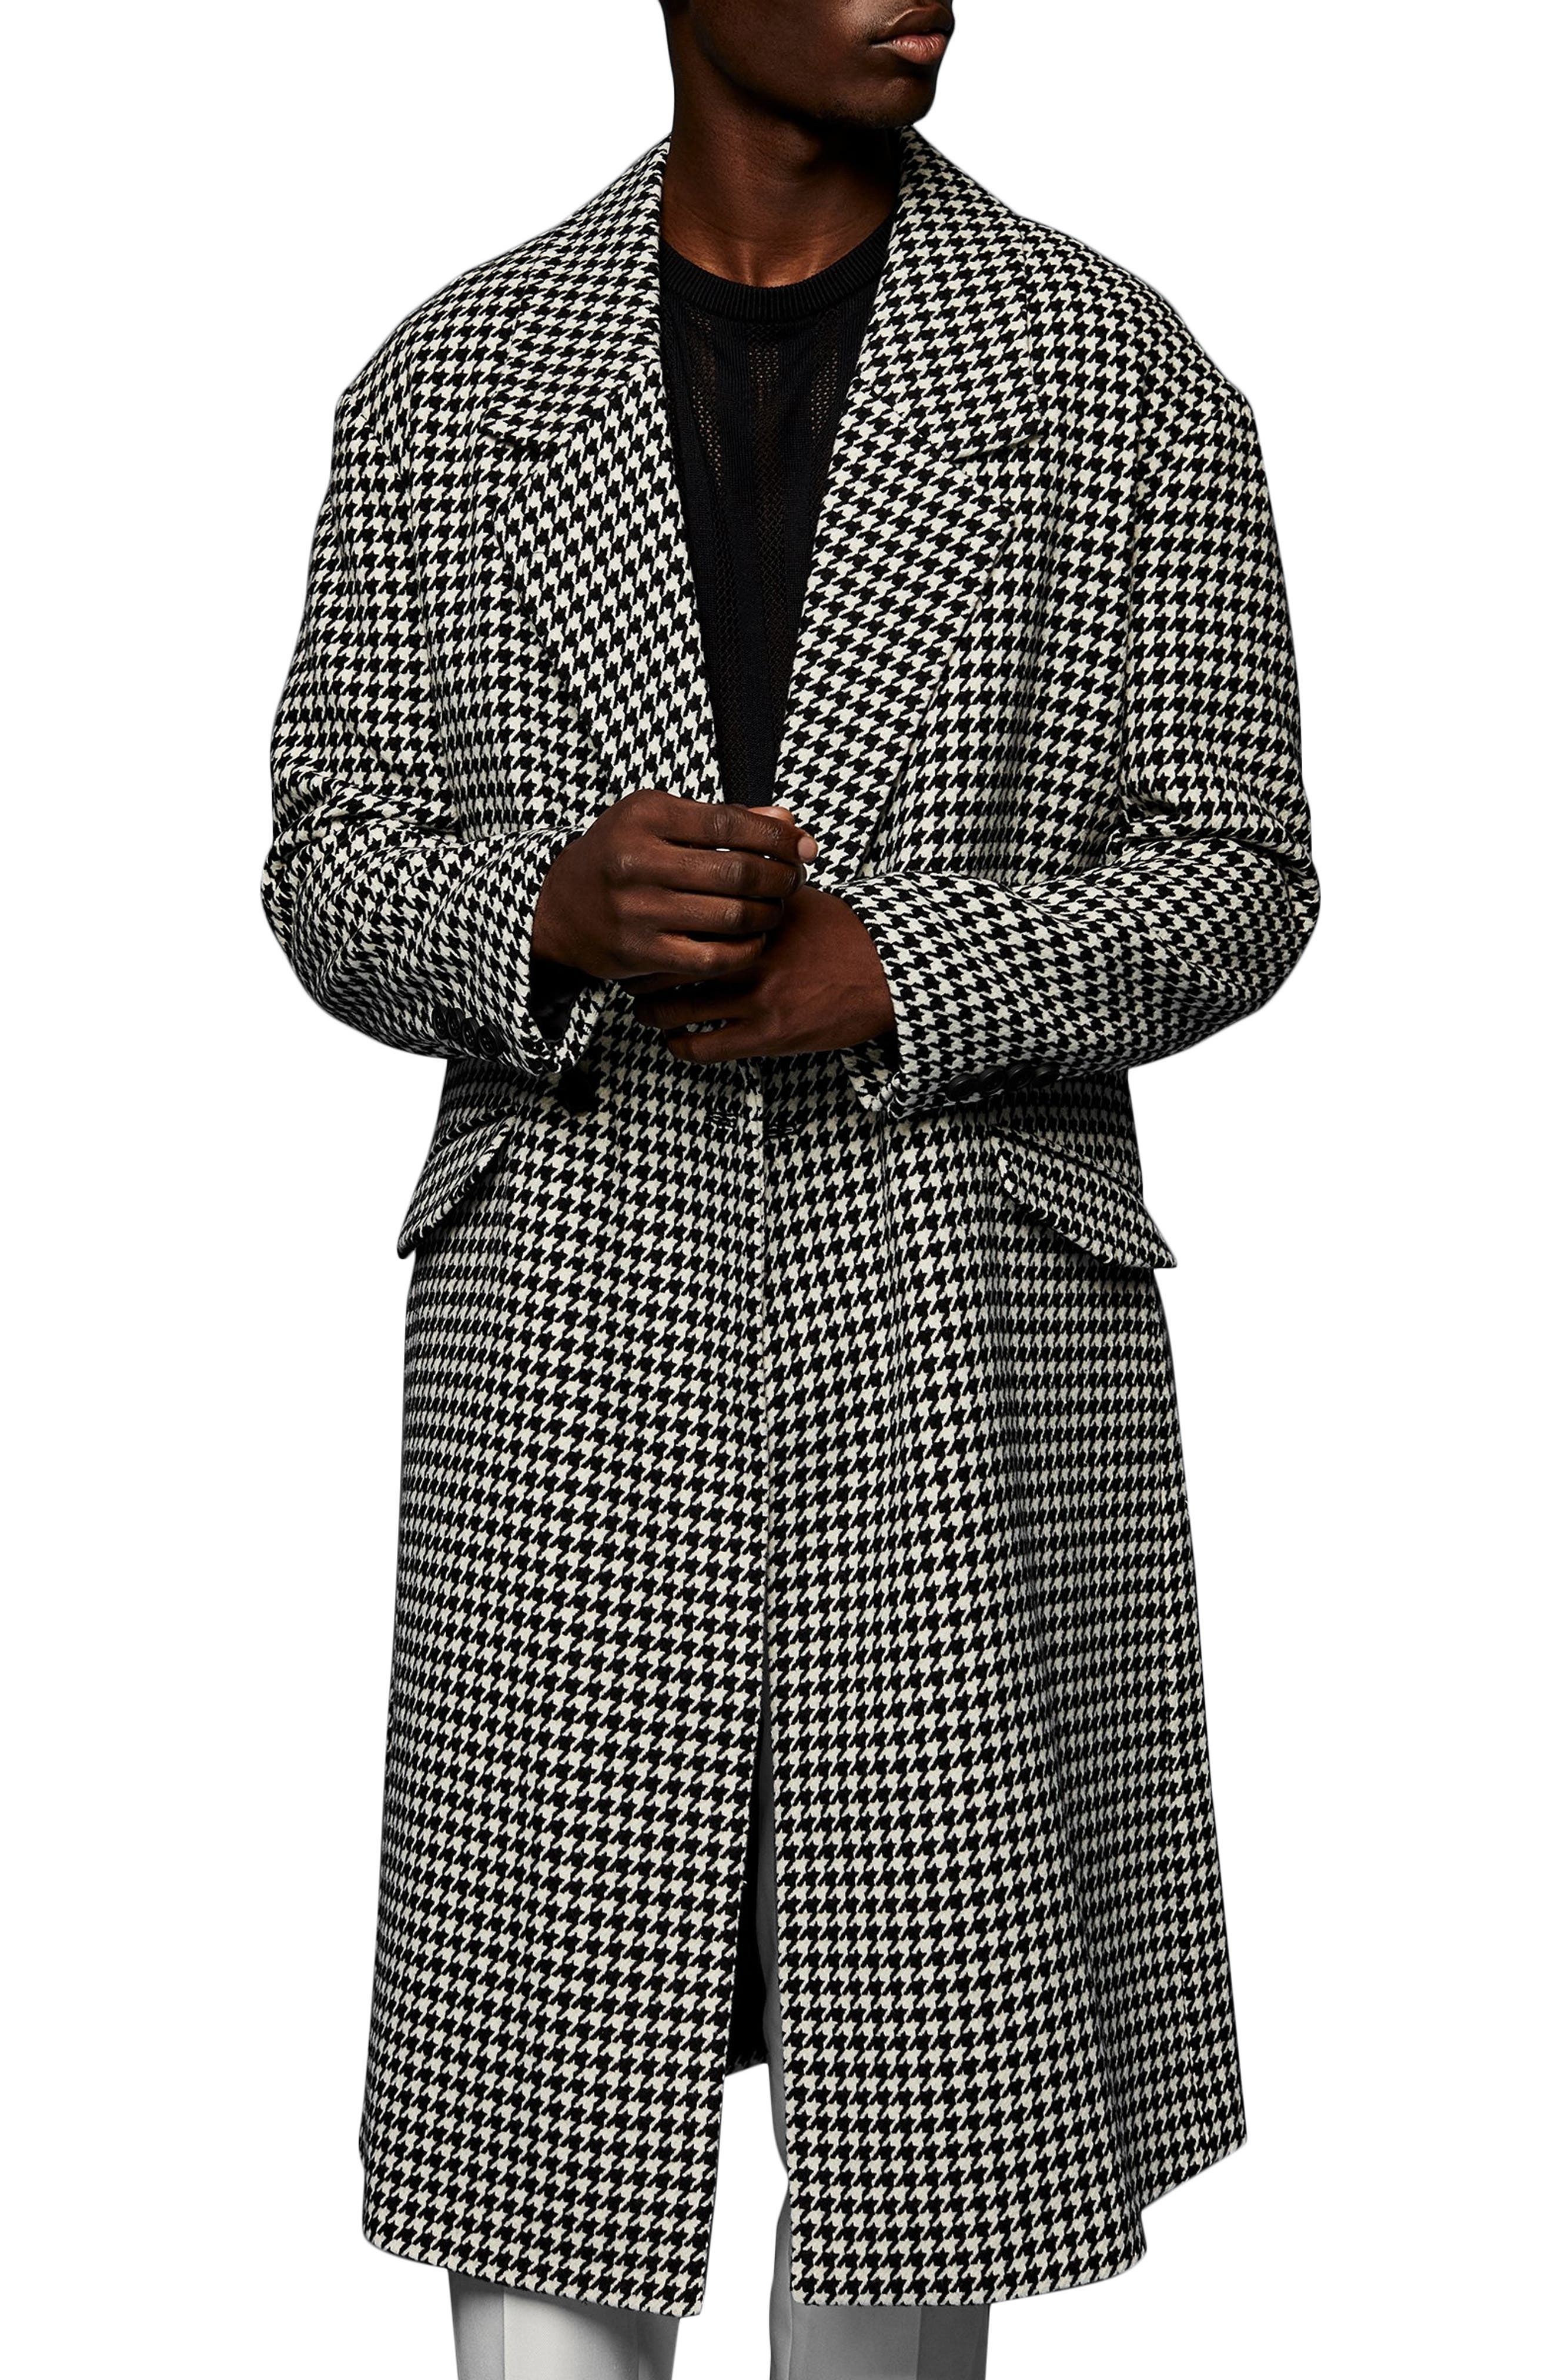 50s Men's Jackets | Greaser Jackets, Leather, Bomber, Gabardine Mens Topman Houndstooth Coat Size Medium - White $200.00 AT vintagedancer.com